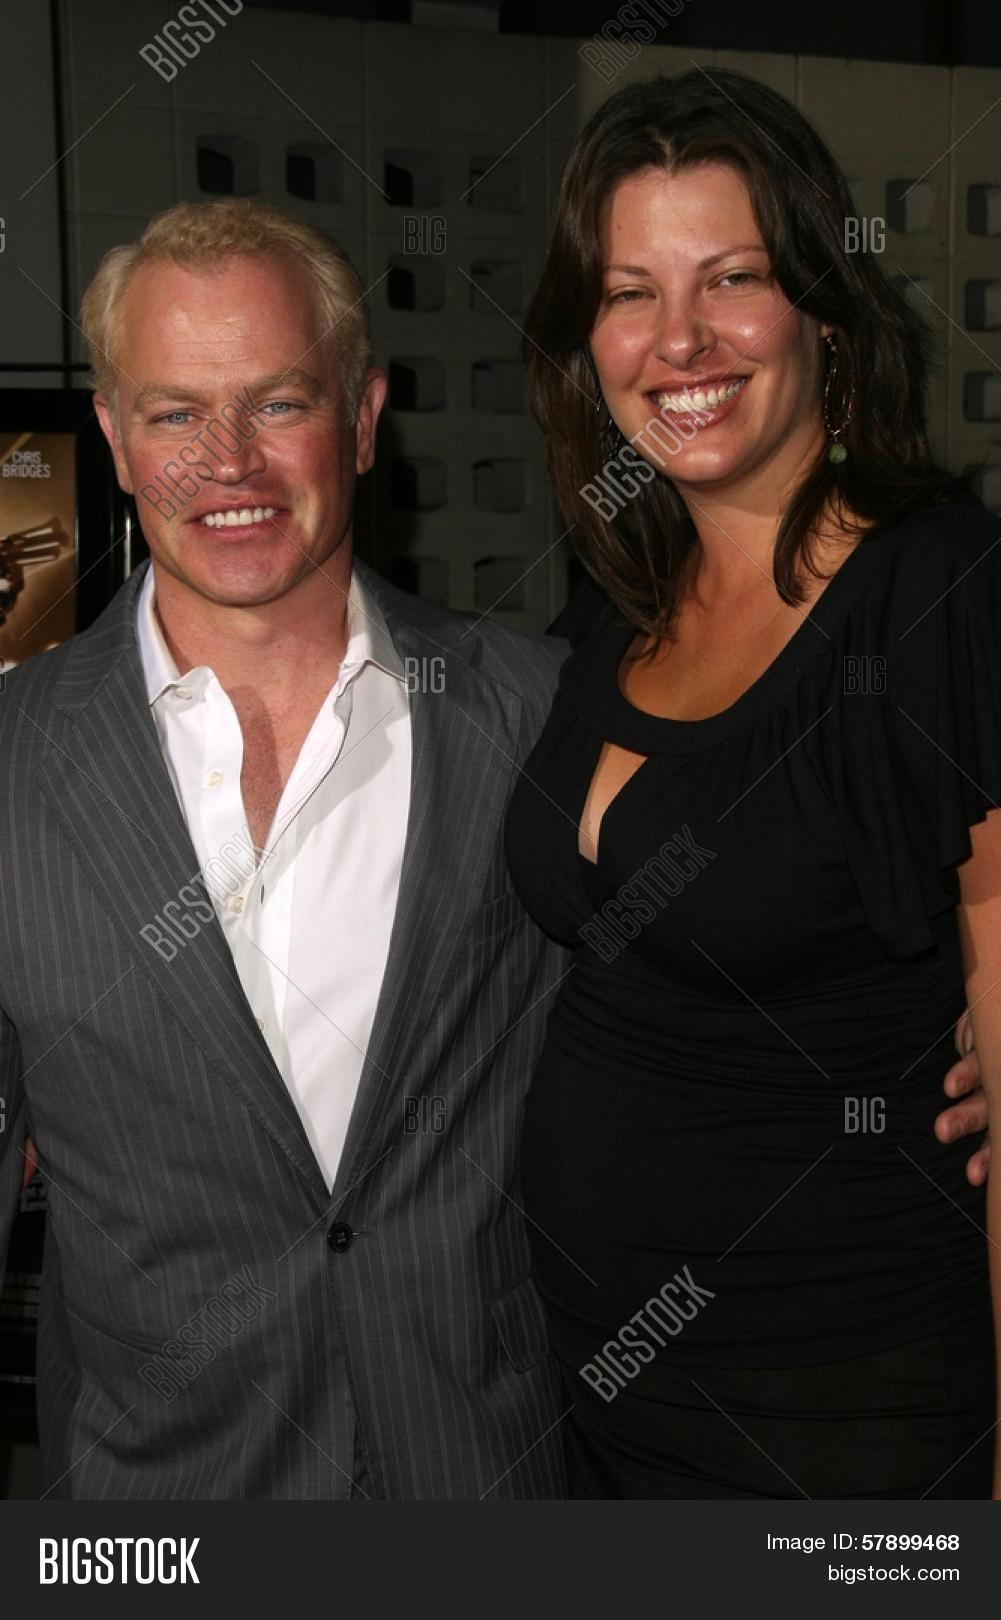 Neal Mcdonough Ruve Image Photo Free Trial Bigstock See all ruve robertson's marriages, divorces, hookups, break ups, affairs, and dating relationships plus celebrity photos, latest ruve robertson news, gossip ruve robertson is currently married to neal mcdonough. neal mcdonough ruve image photo free